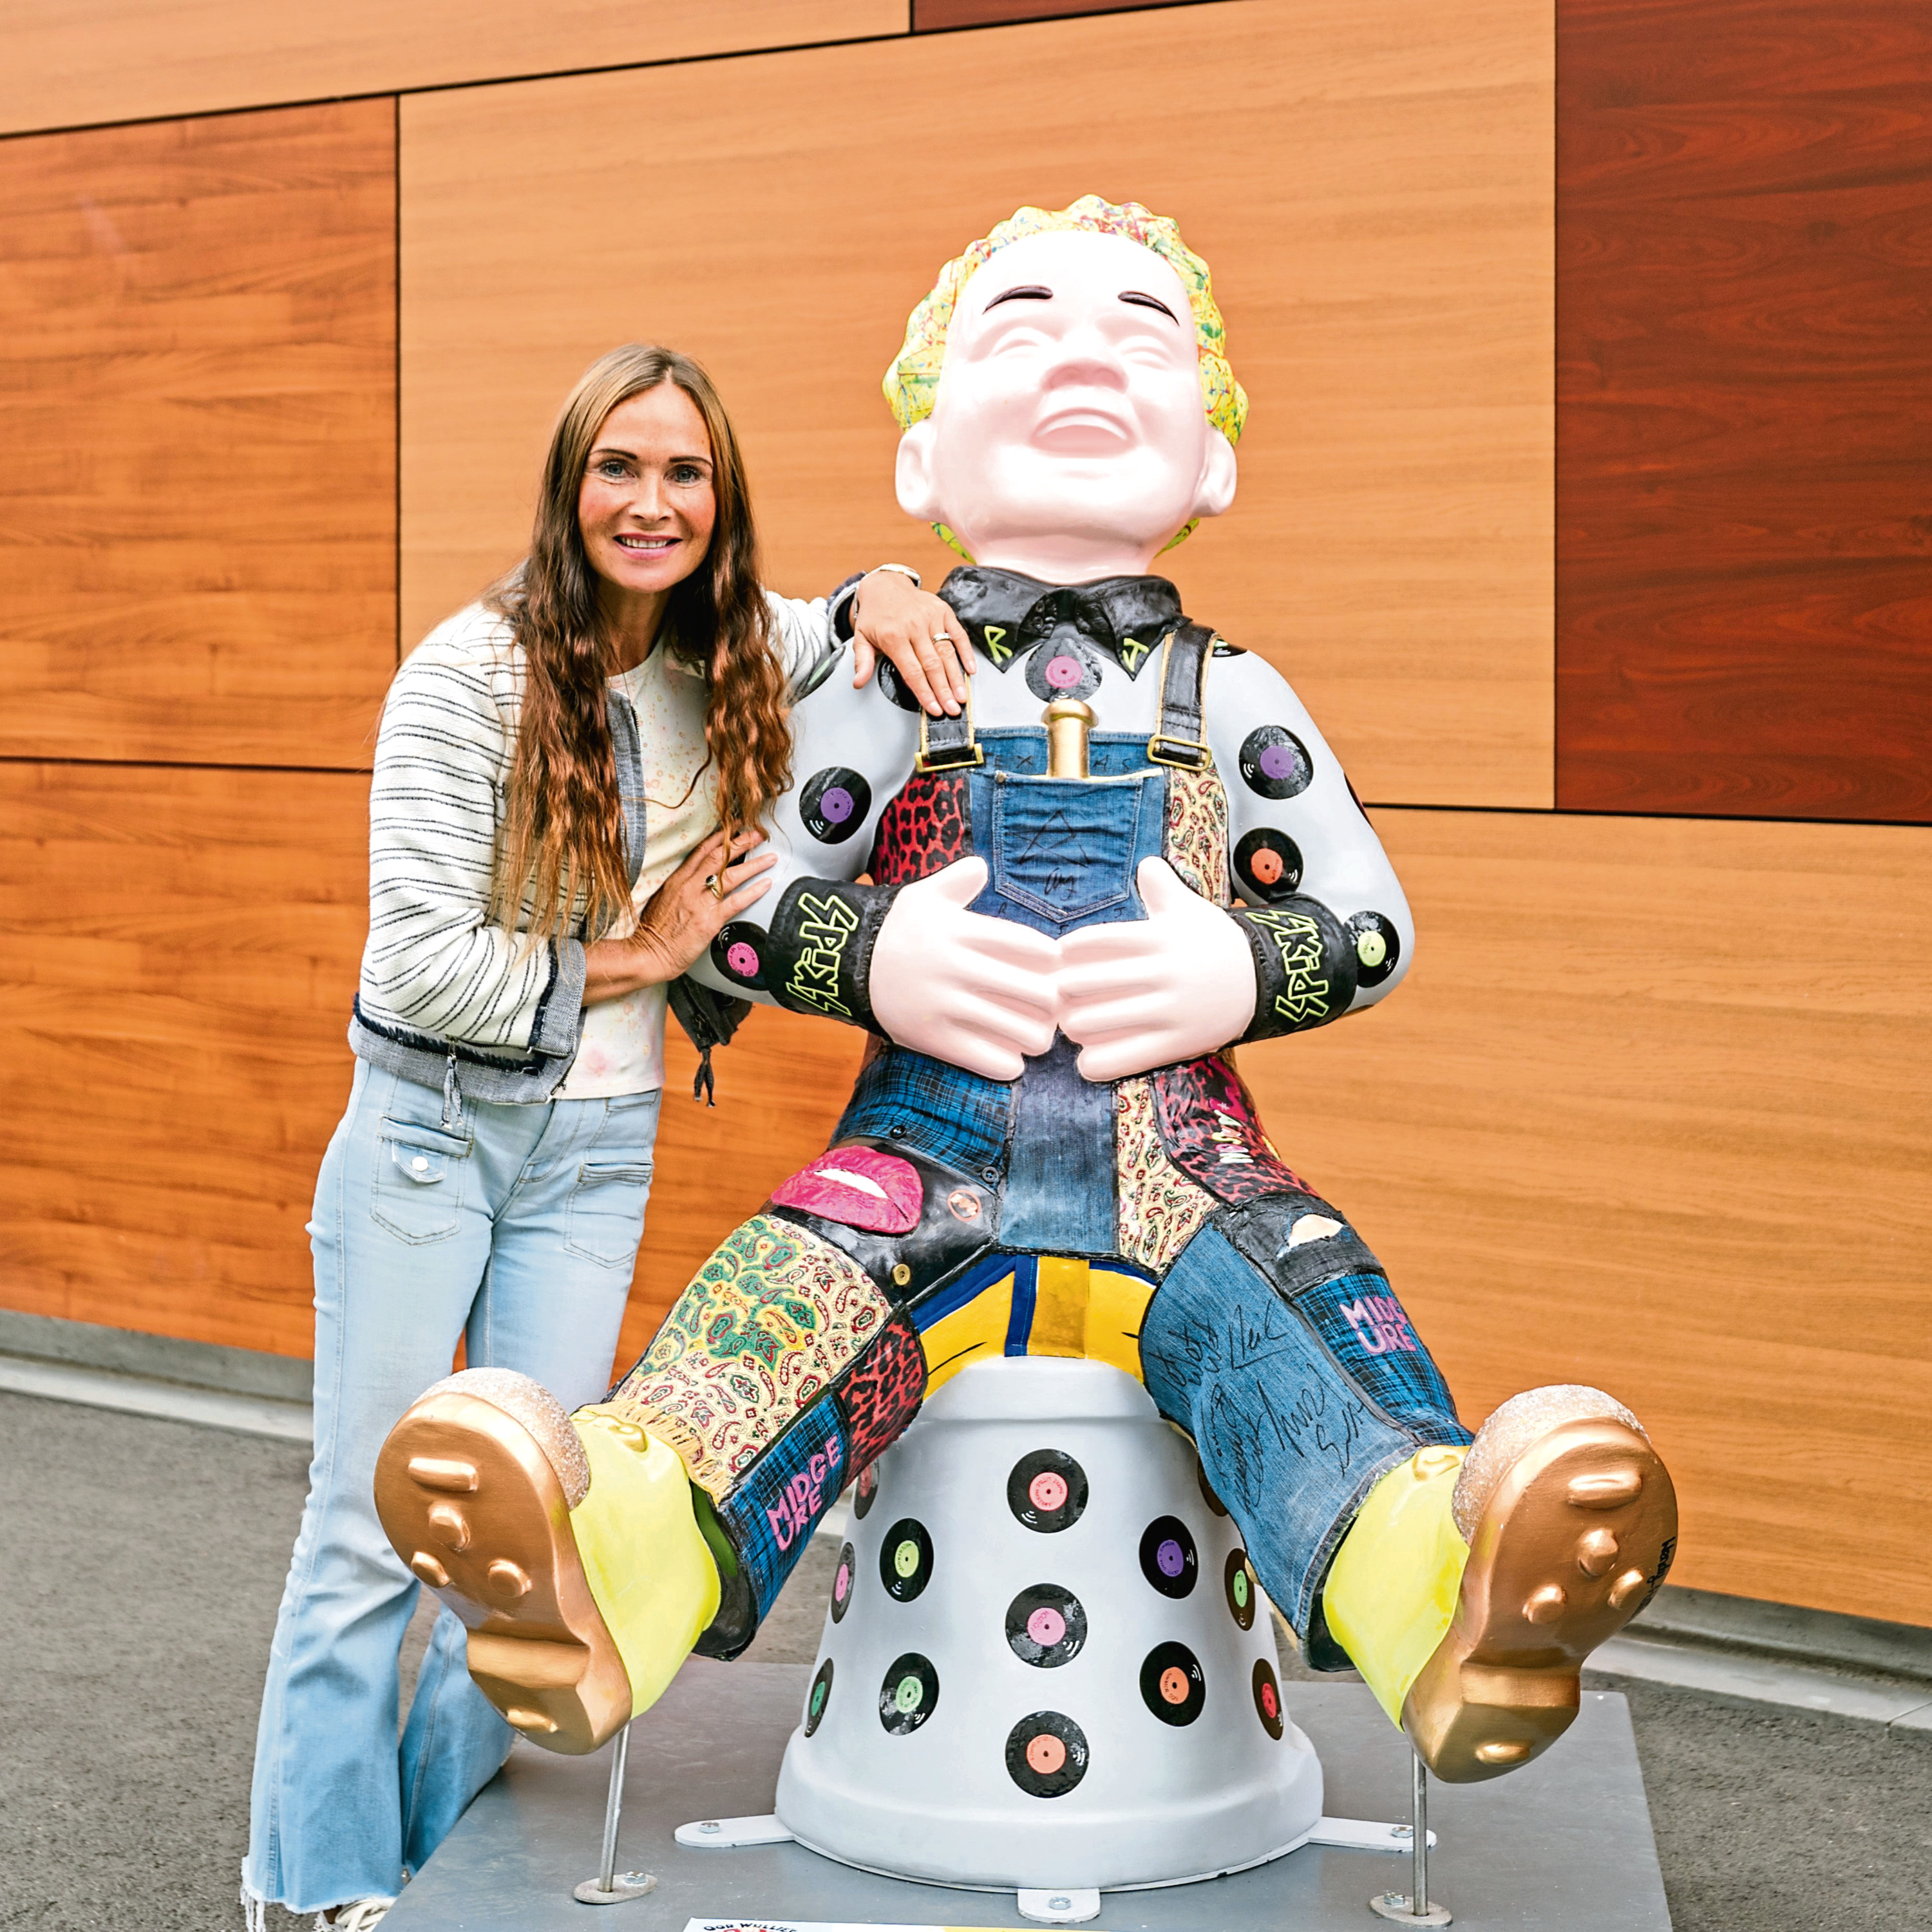 Wendy Helliwell, with her Aff Yir Rocker Oor Wullie statue, is bringing her work to Aberdeen Art Fair next weekend at the Music Hall